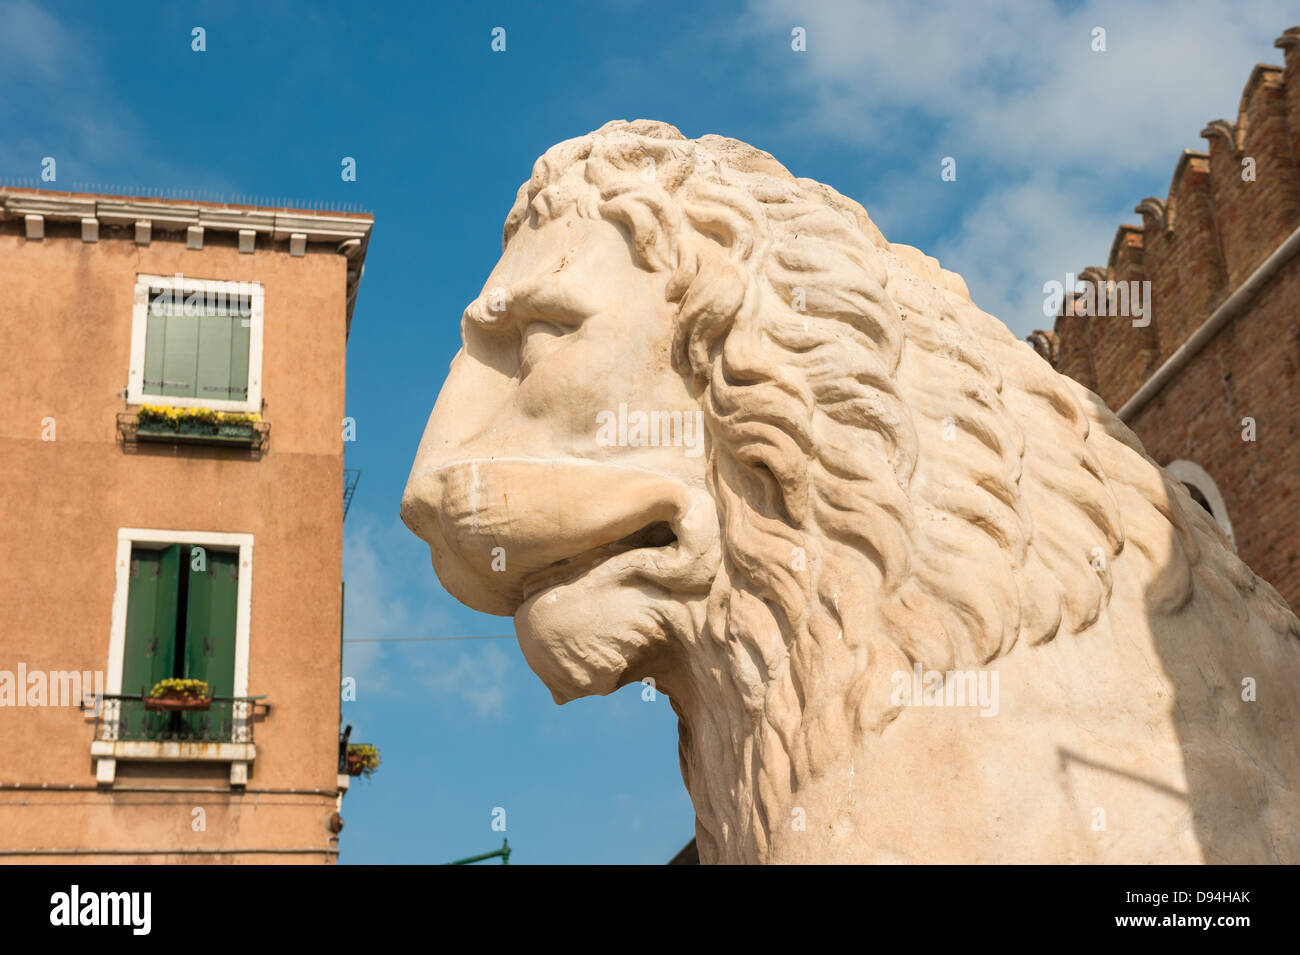 Lion at the Venetian Arsenal, Venice, Italy - Stock Image